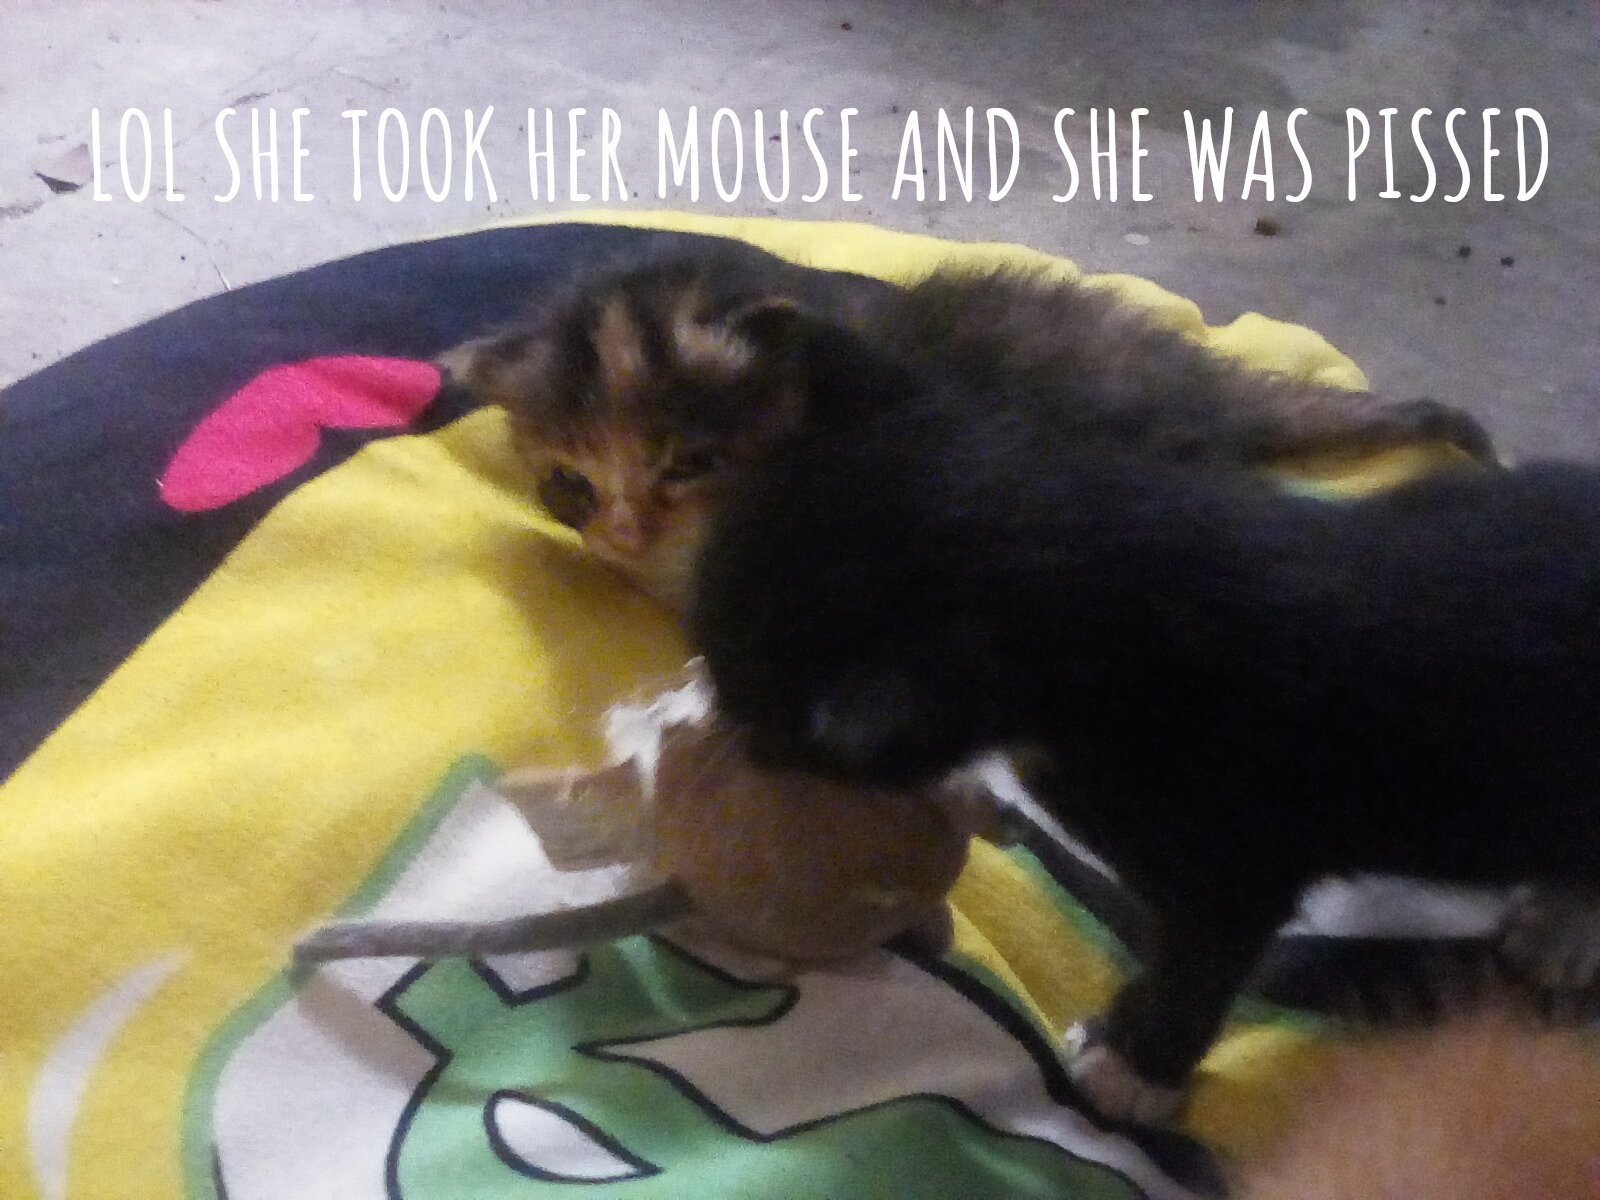 Lol she stole that toy mouse - meme